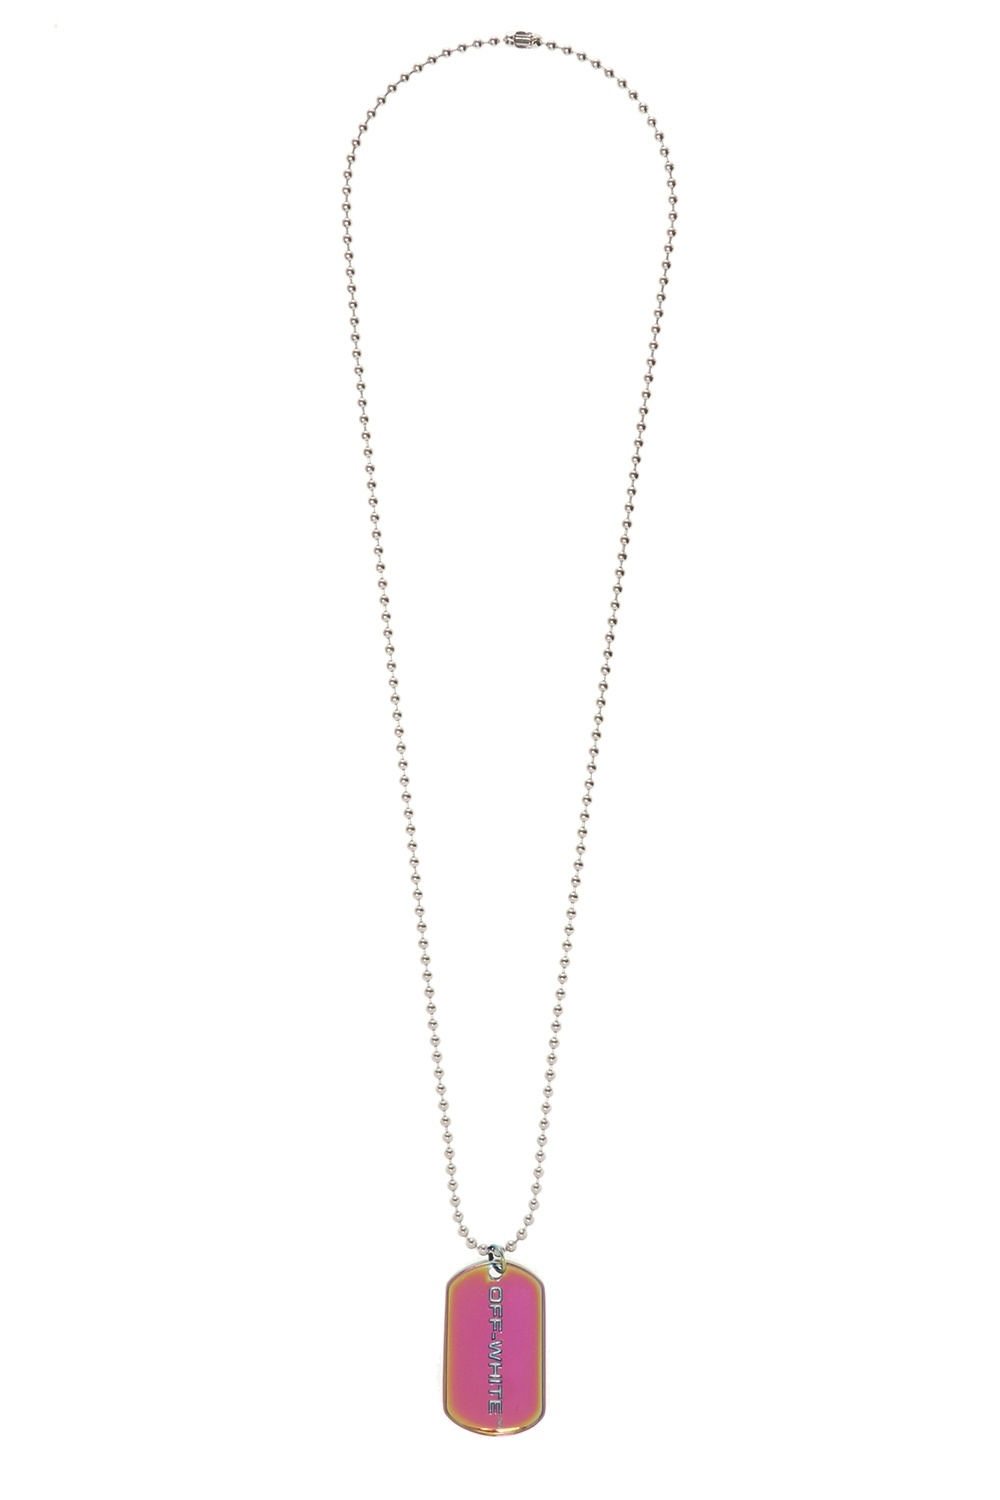 Off-White Necklace with charm